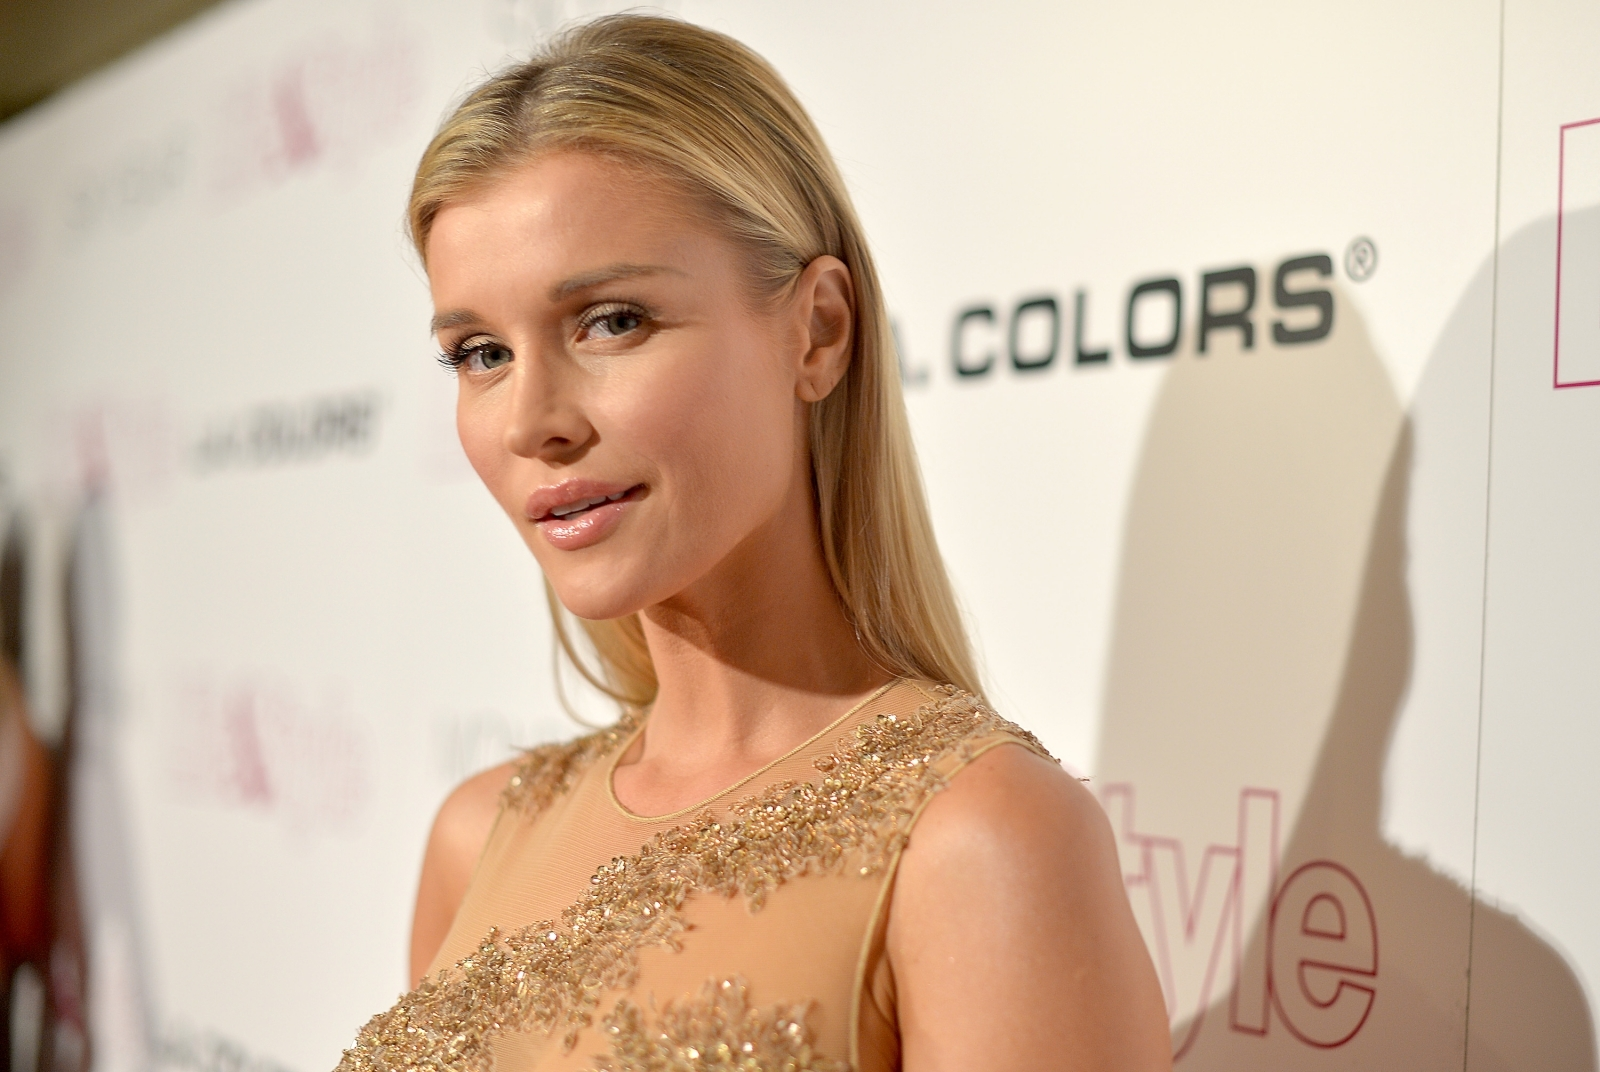 Joanna Krupa defies the years in stunning two-piece: 'No excuse in not staying fit'